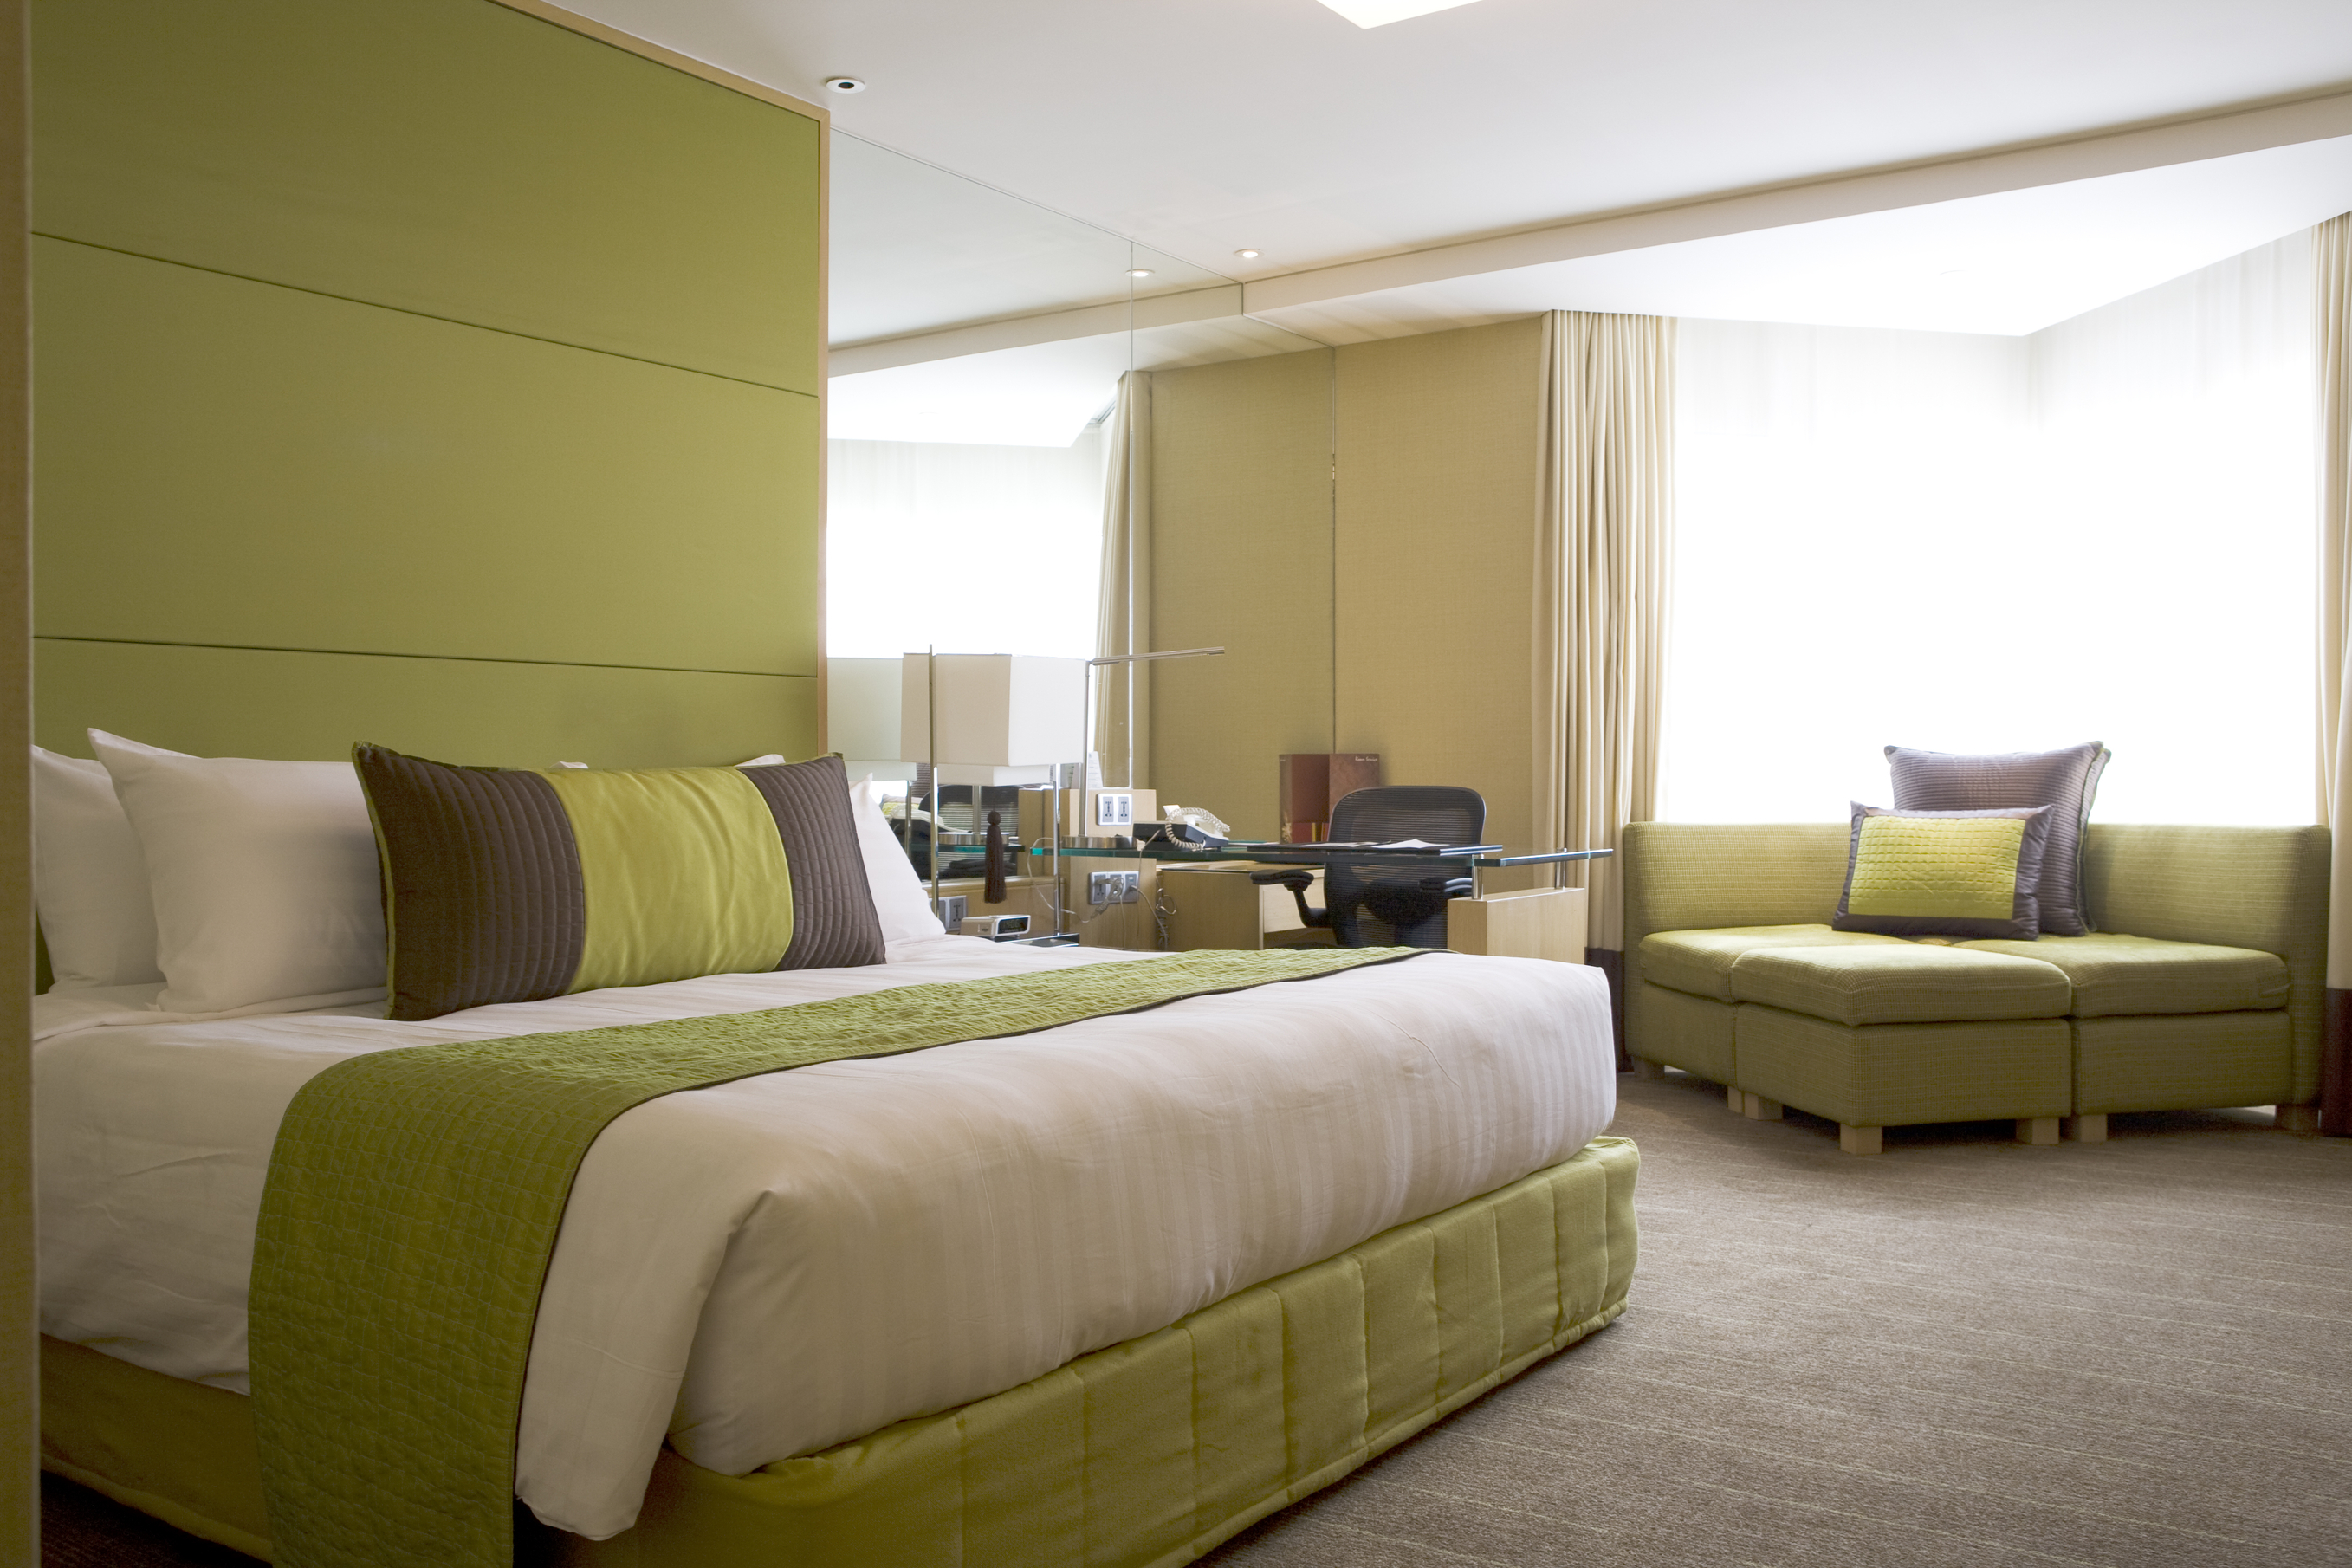 Calming Bedroom Colours for a Great Night's Sleep - The ...